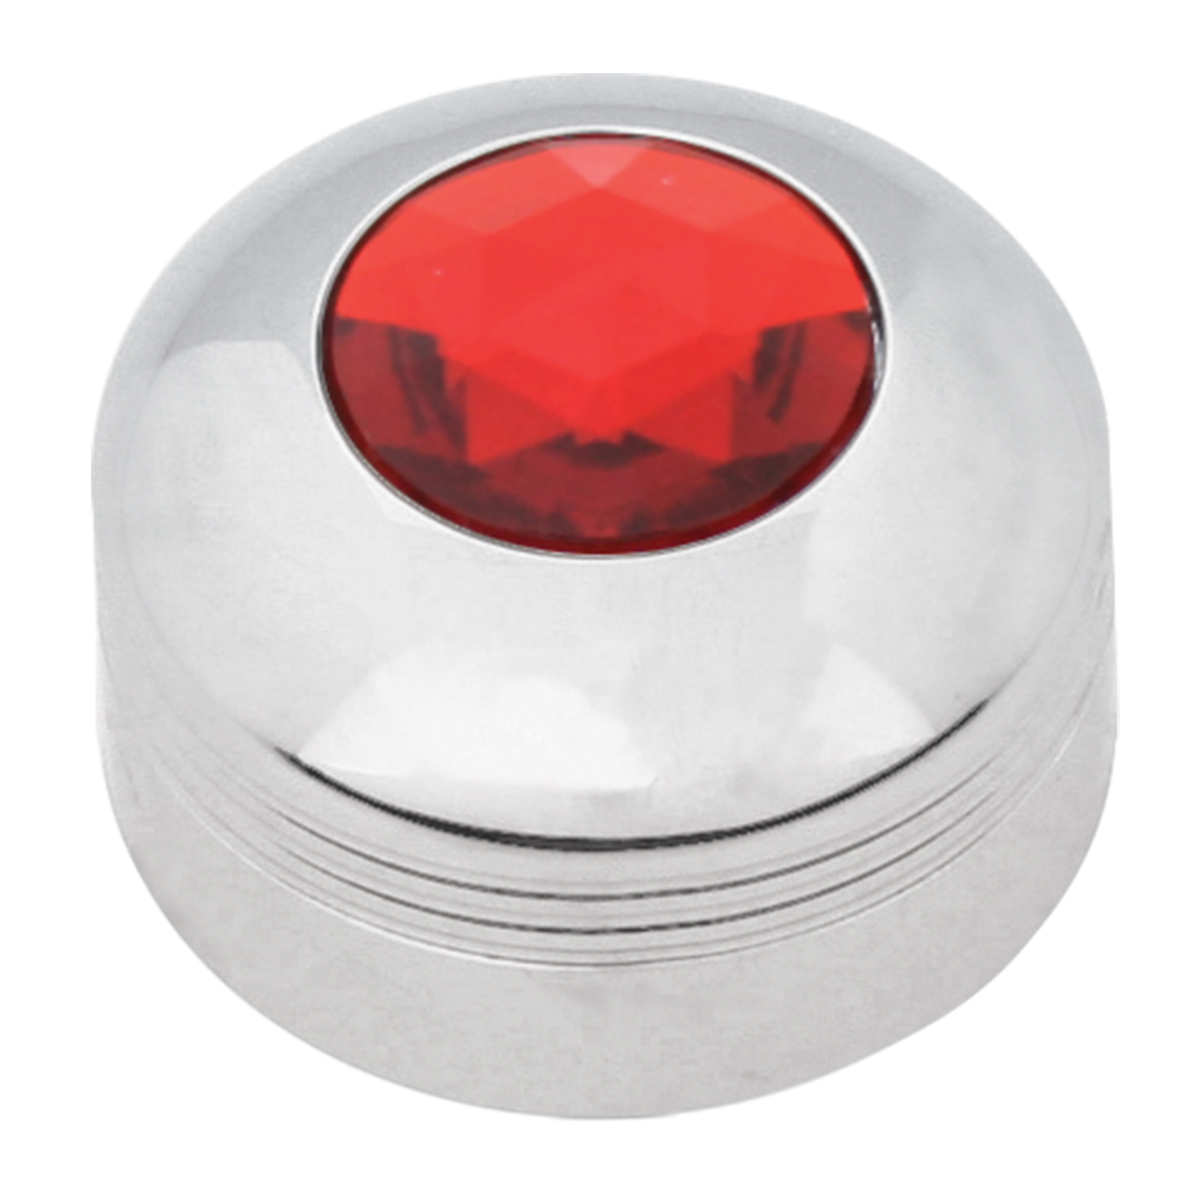 69055 Chrome Plastic A/C Know with Red Plastic Jewel for KW